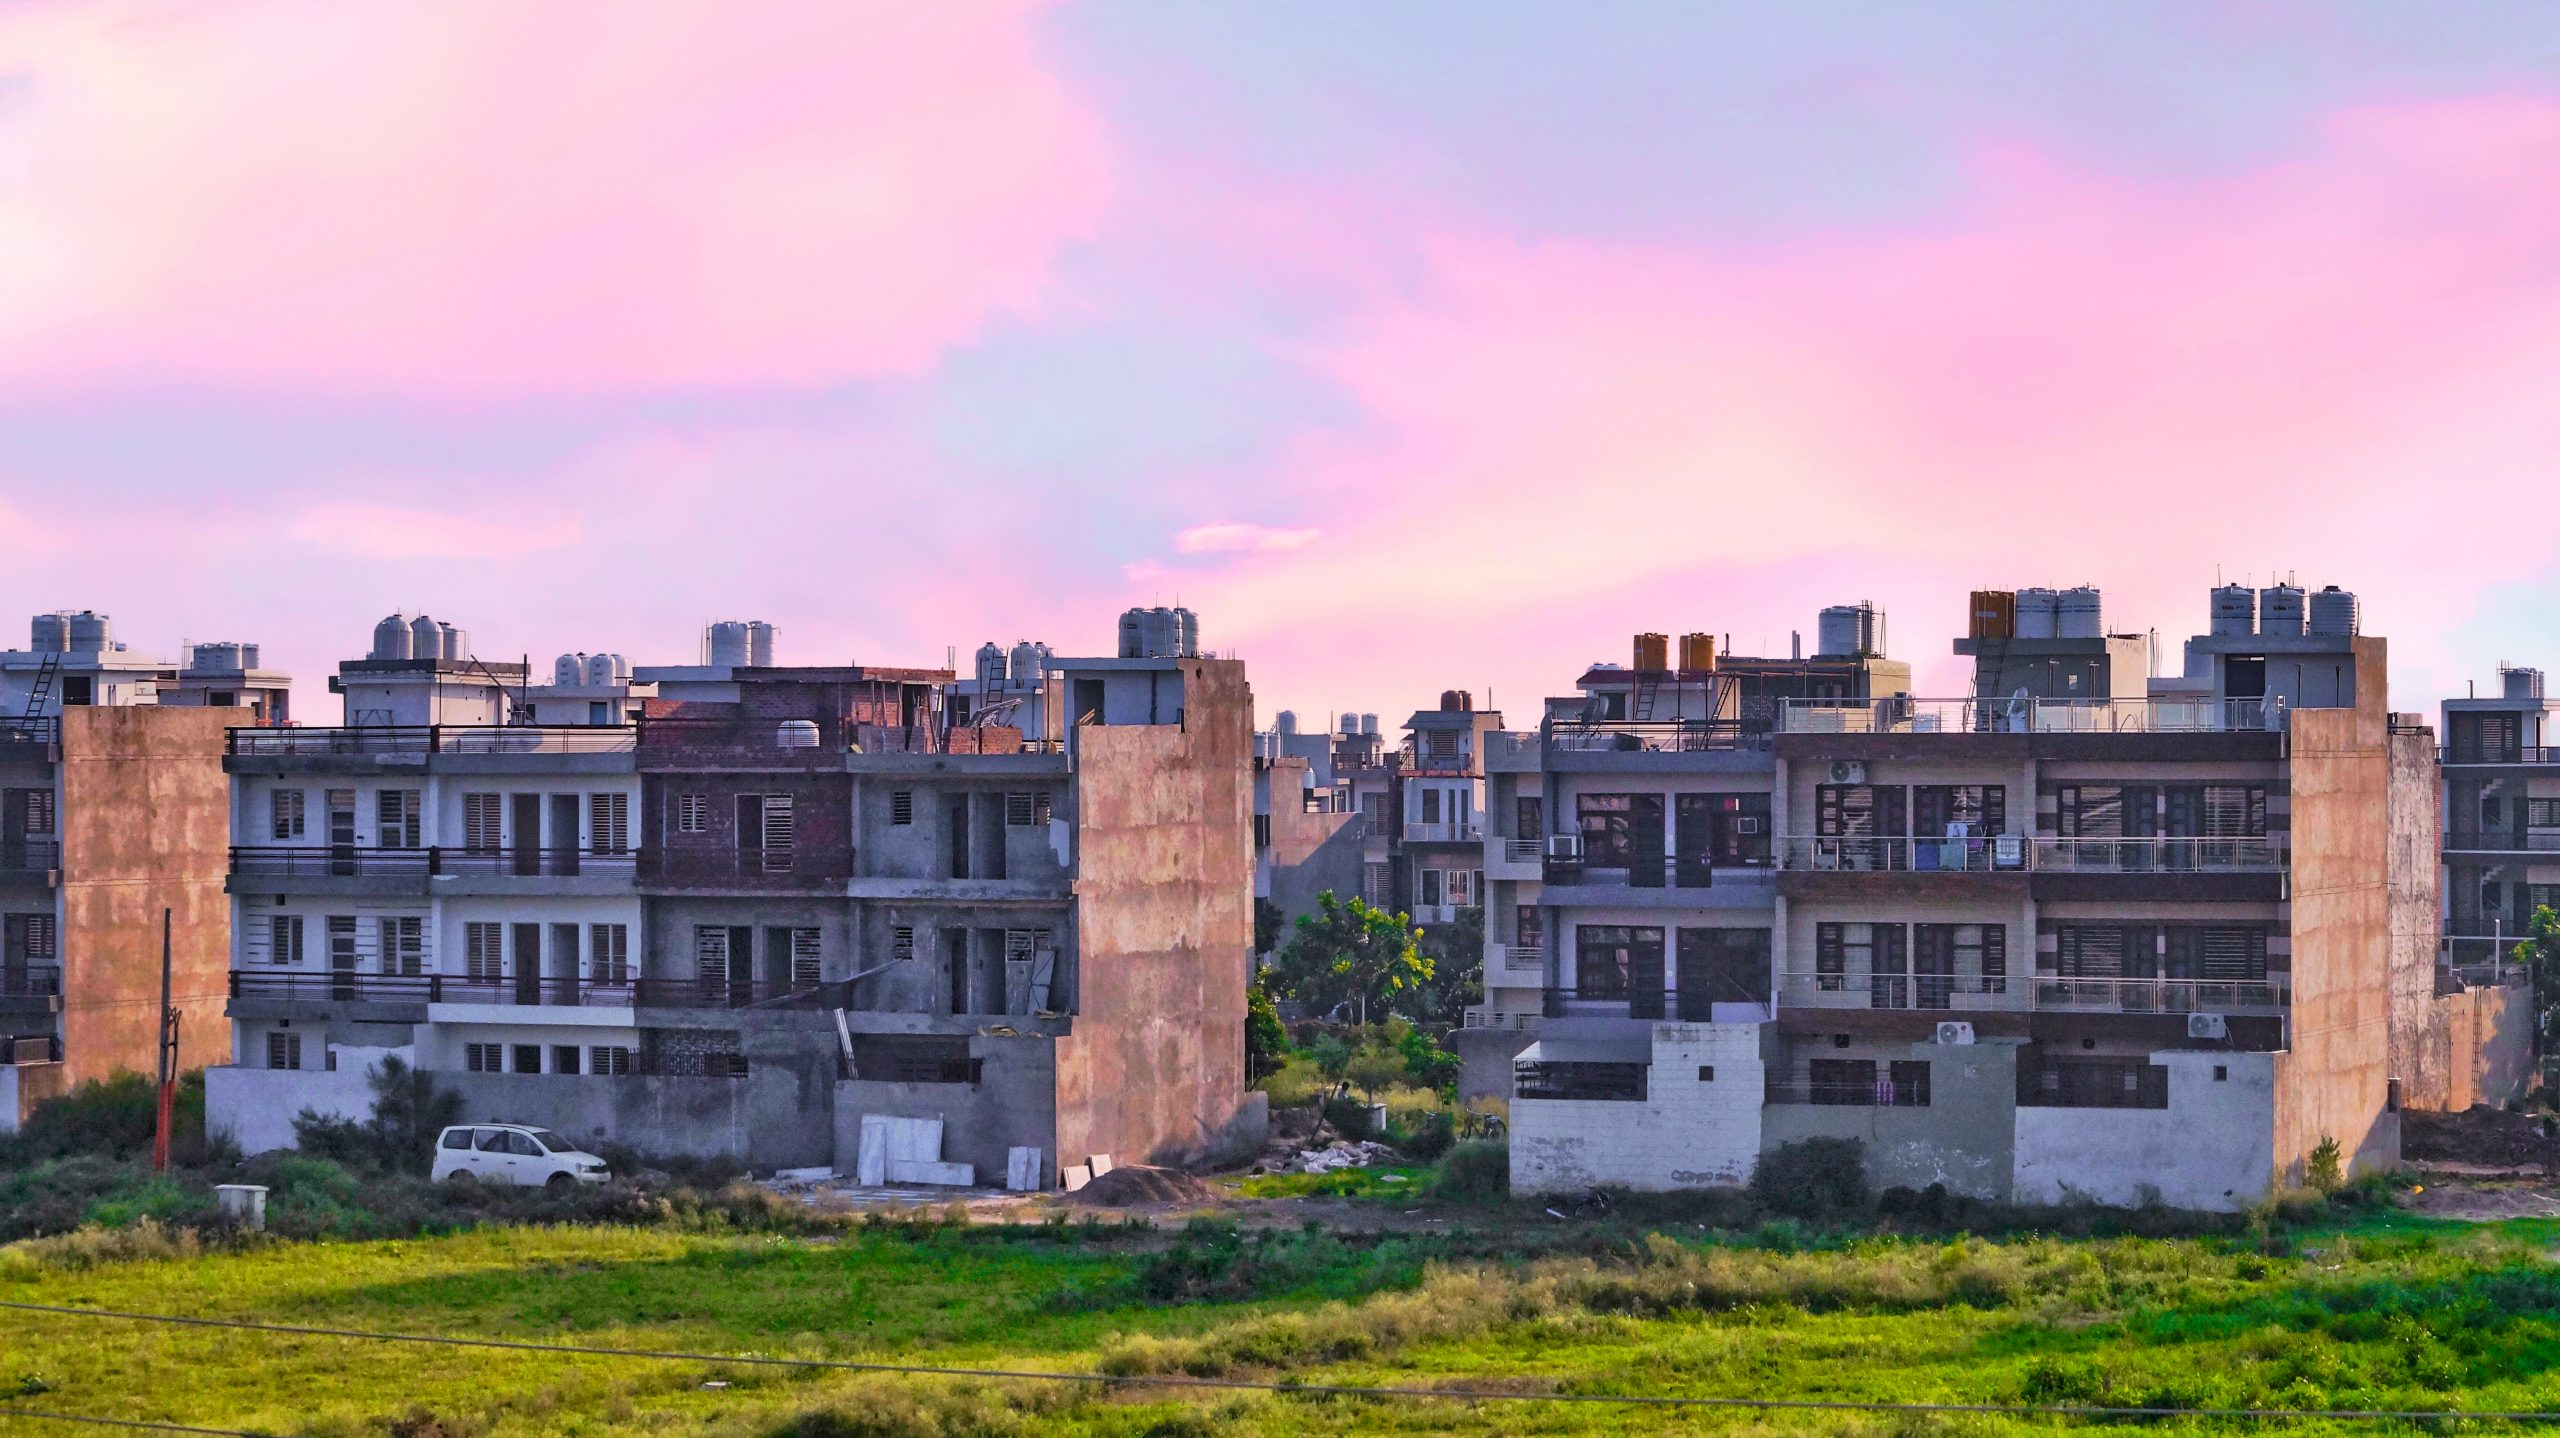 Pink sky and housing apartments